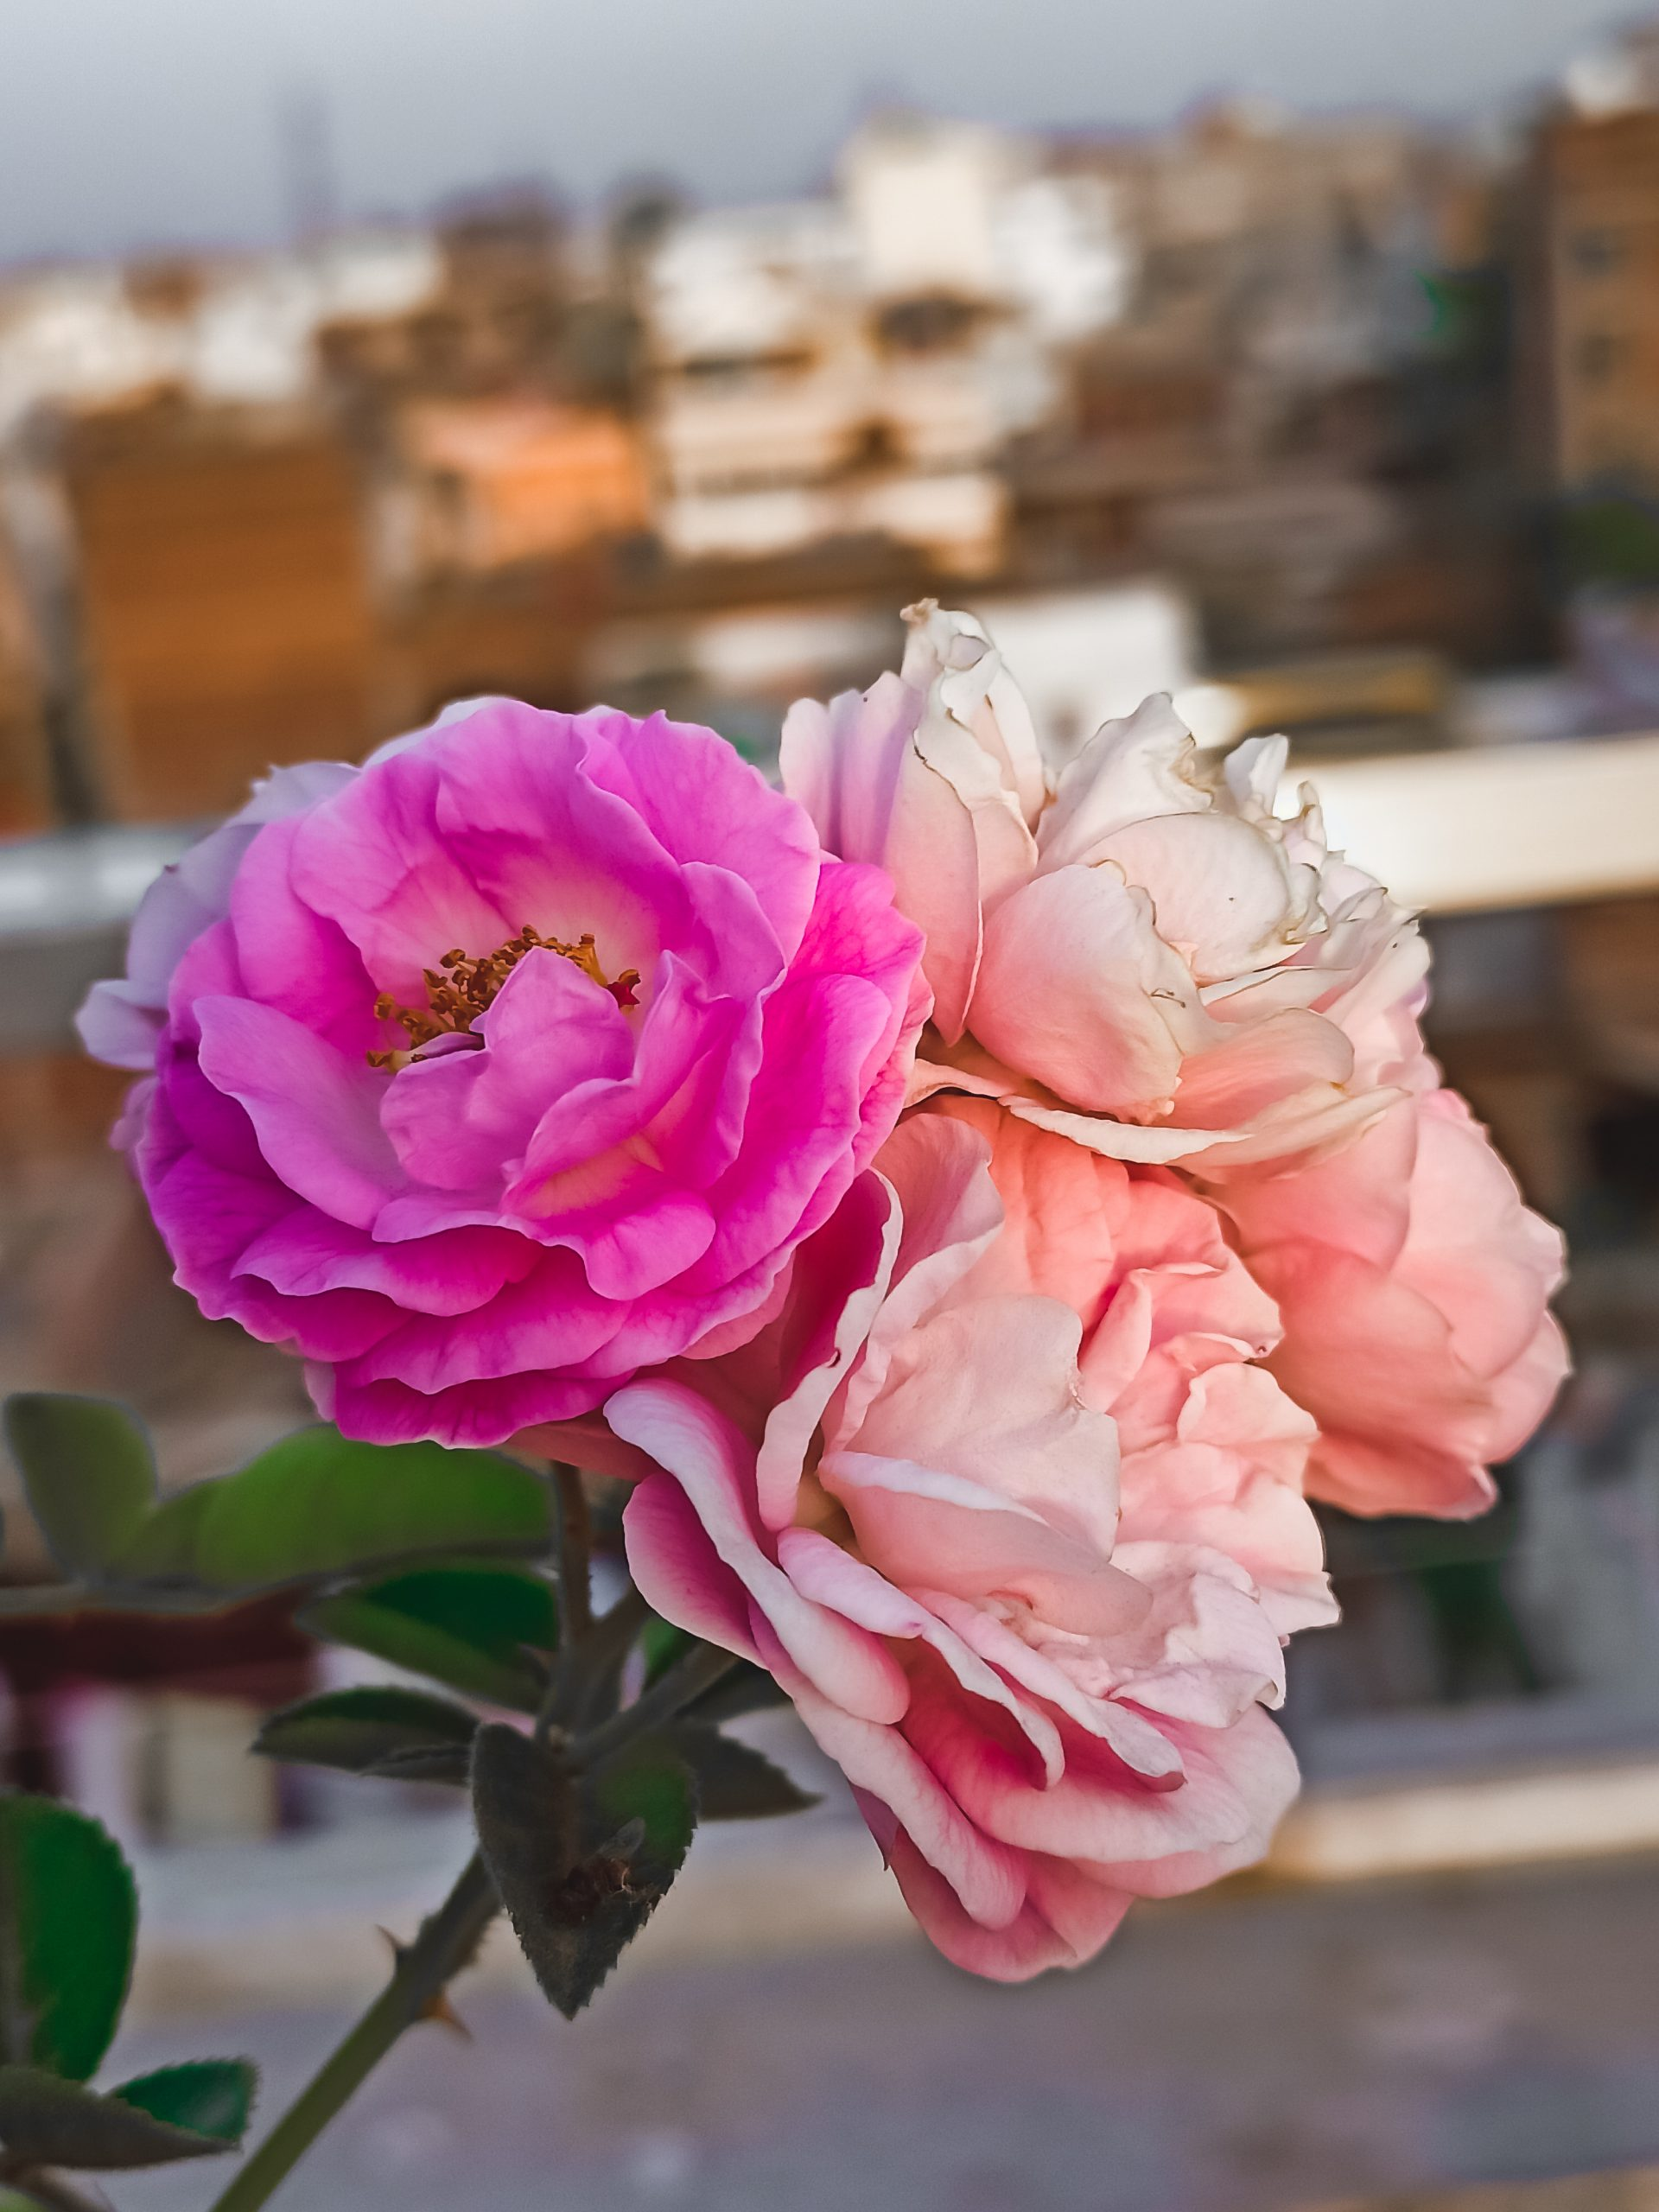 A bunch of white and pink roses